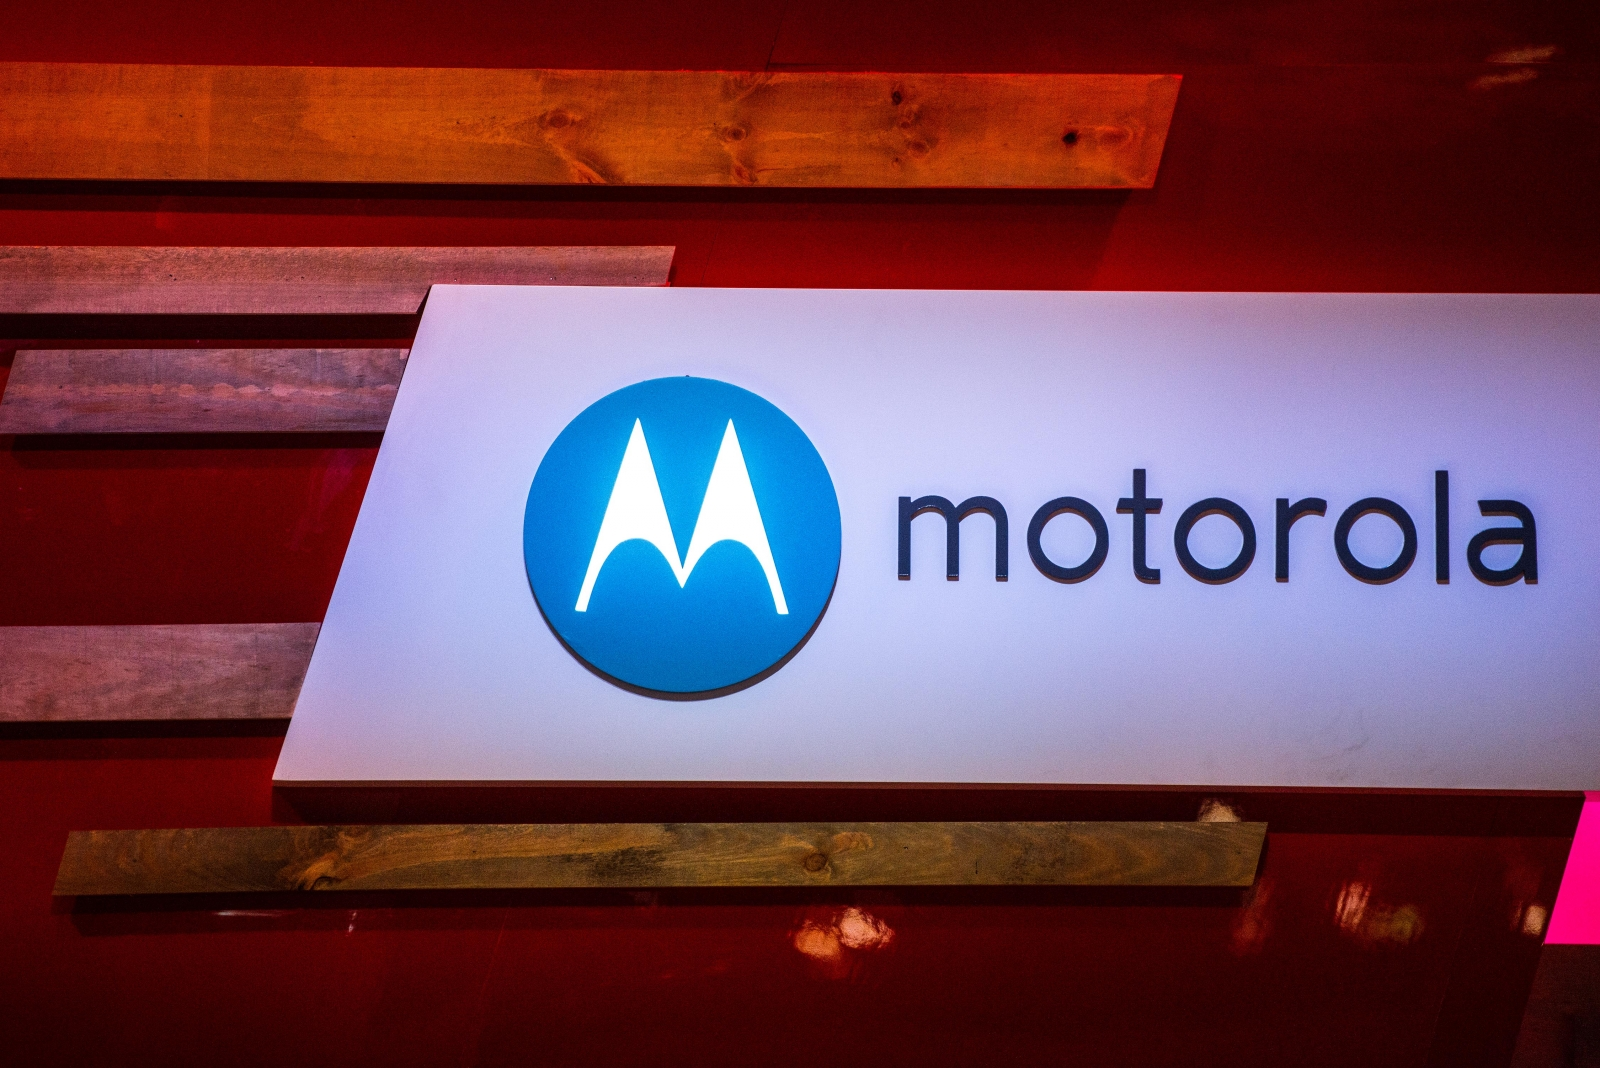 Motorola Moto X 2016 Spotted On GFXBench With A Snapdragon 820 Chipset